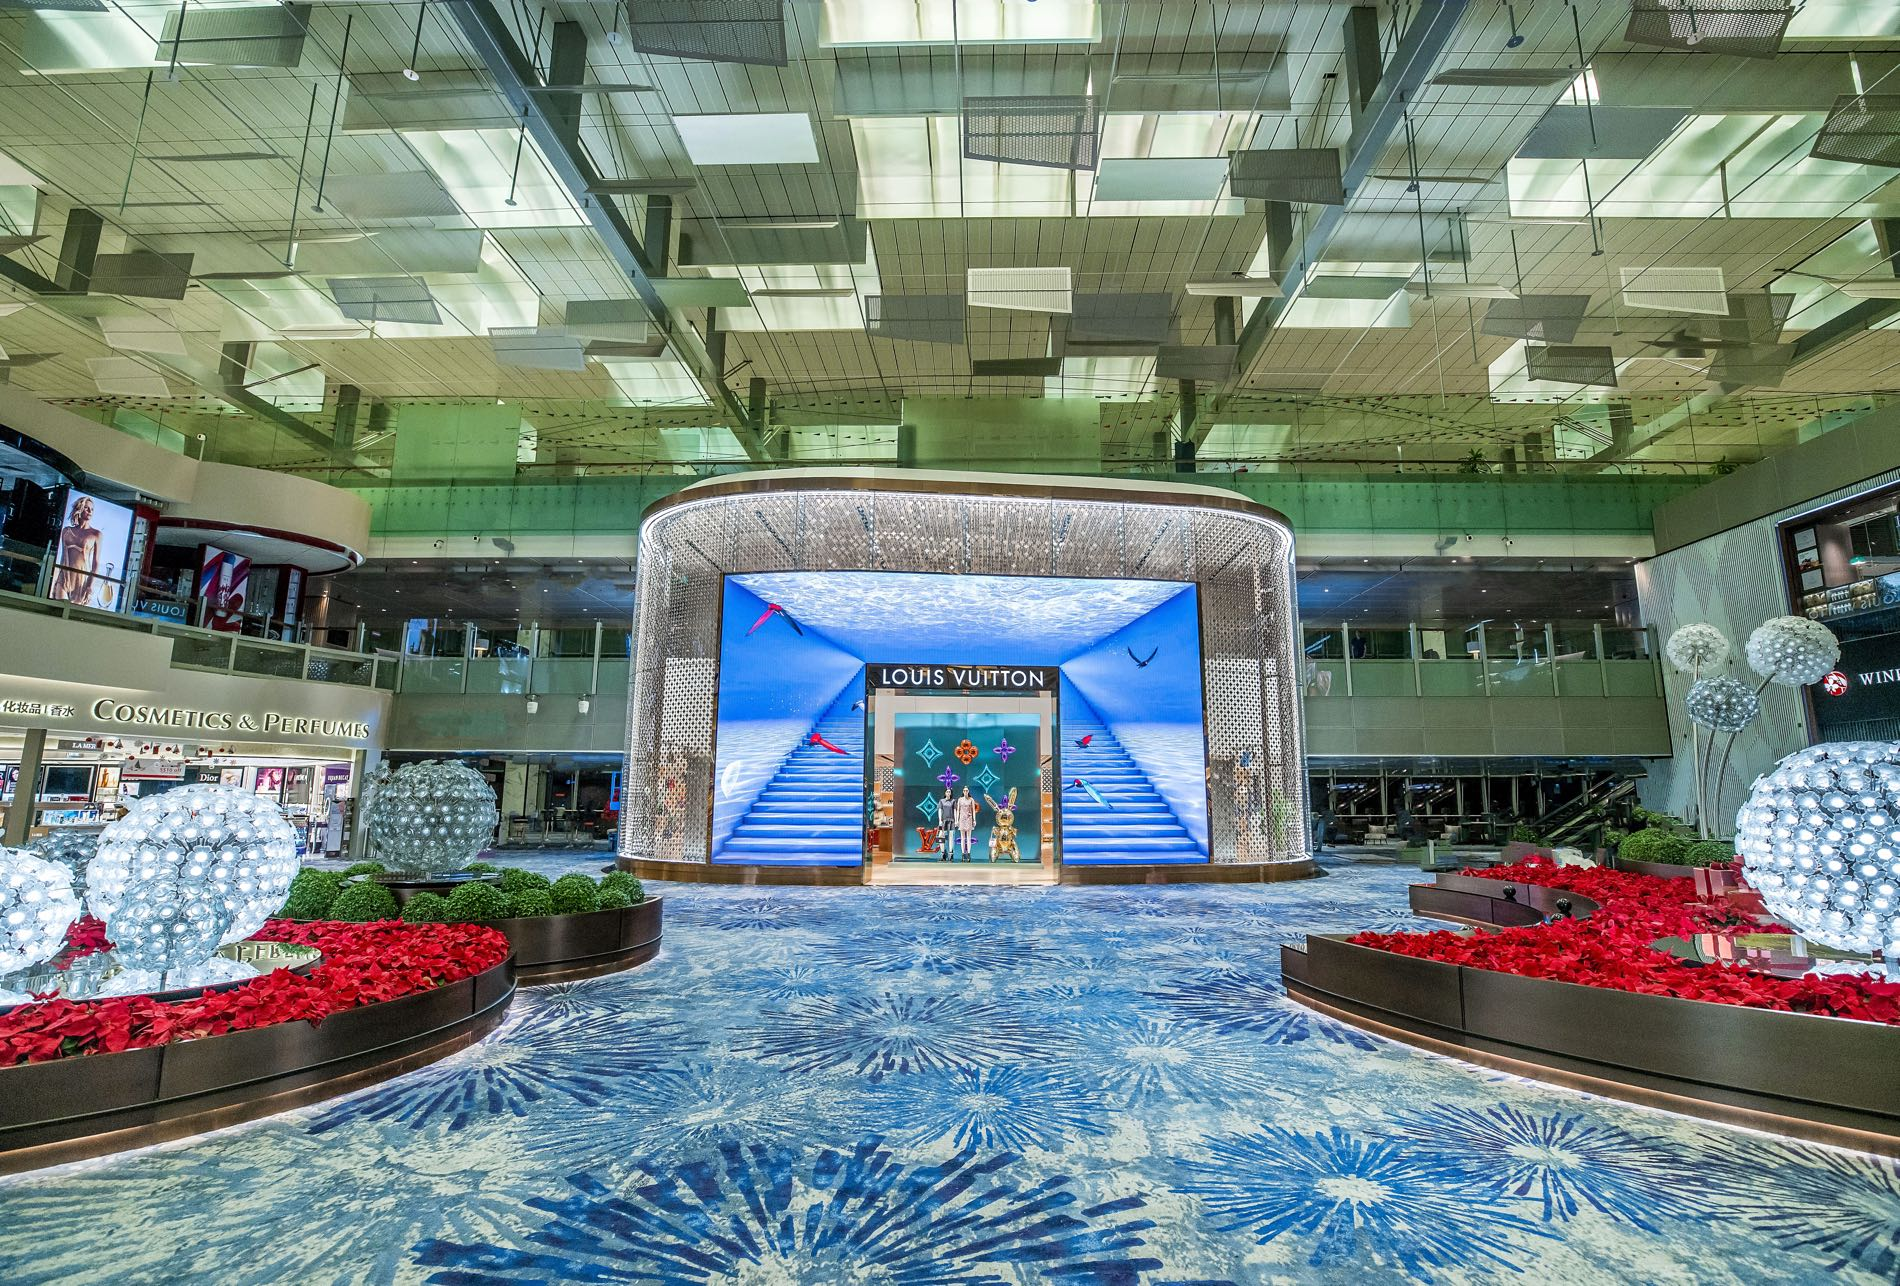 louis vuitton opens 1st airport store in south asia in singapore u0026 39 s changi airport terminal 3